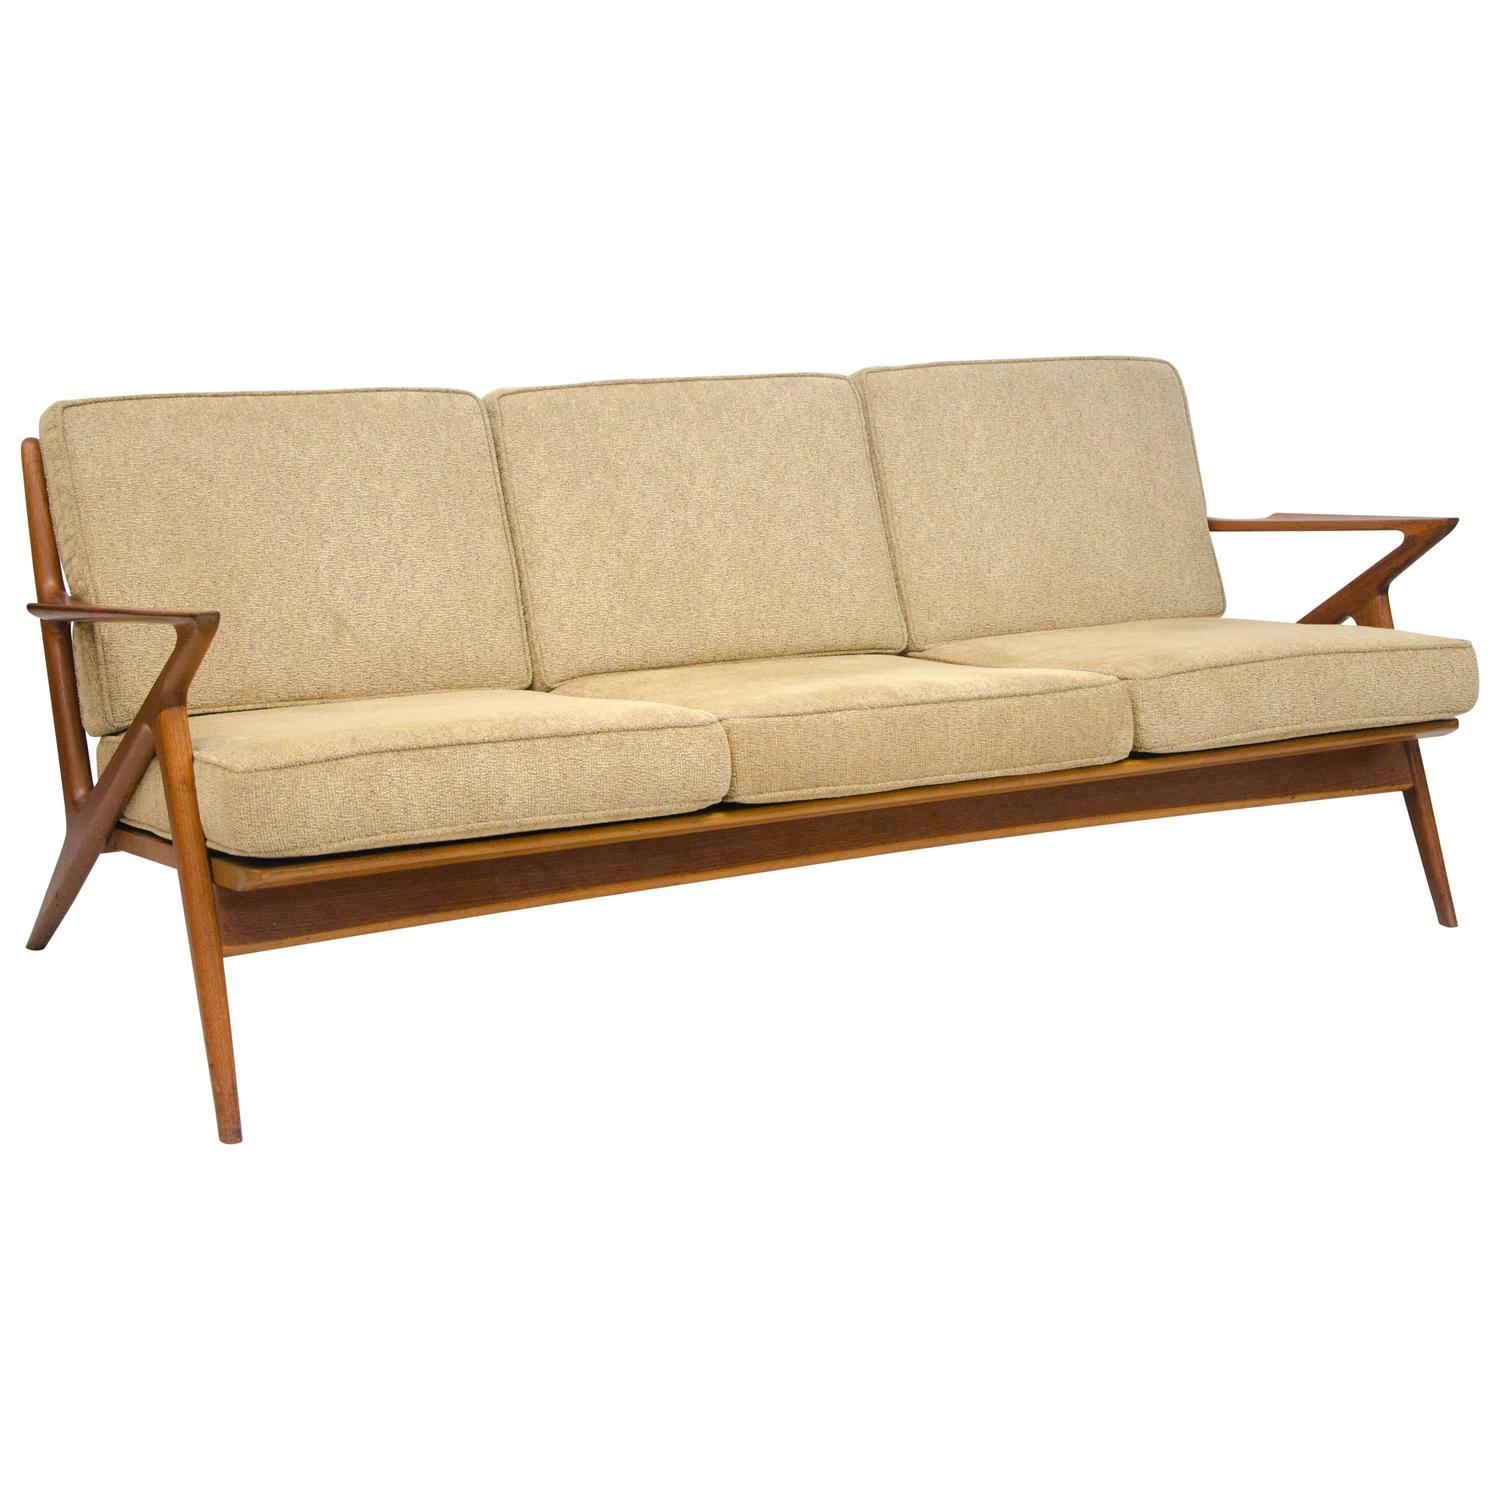 Stupendous Danish Teak Z Sofa Poul Jensen For Selig At 1Stdibs Alphanode Cool Chair Designs And Ideas Alphanodeonline